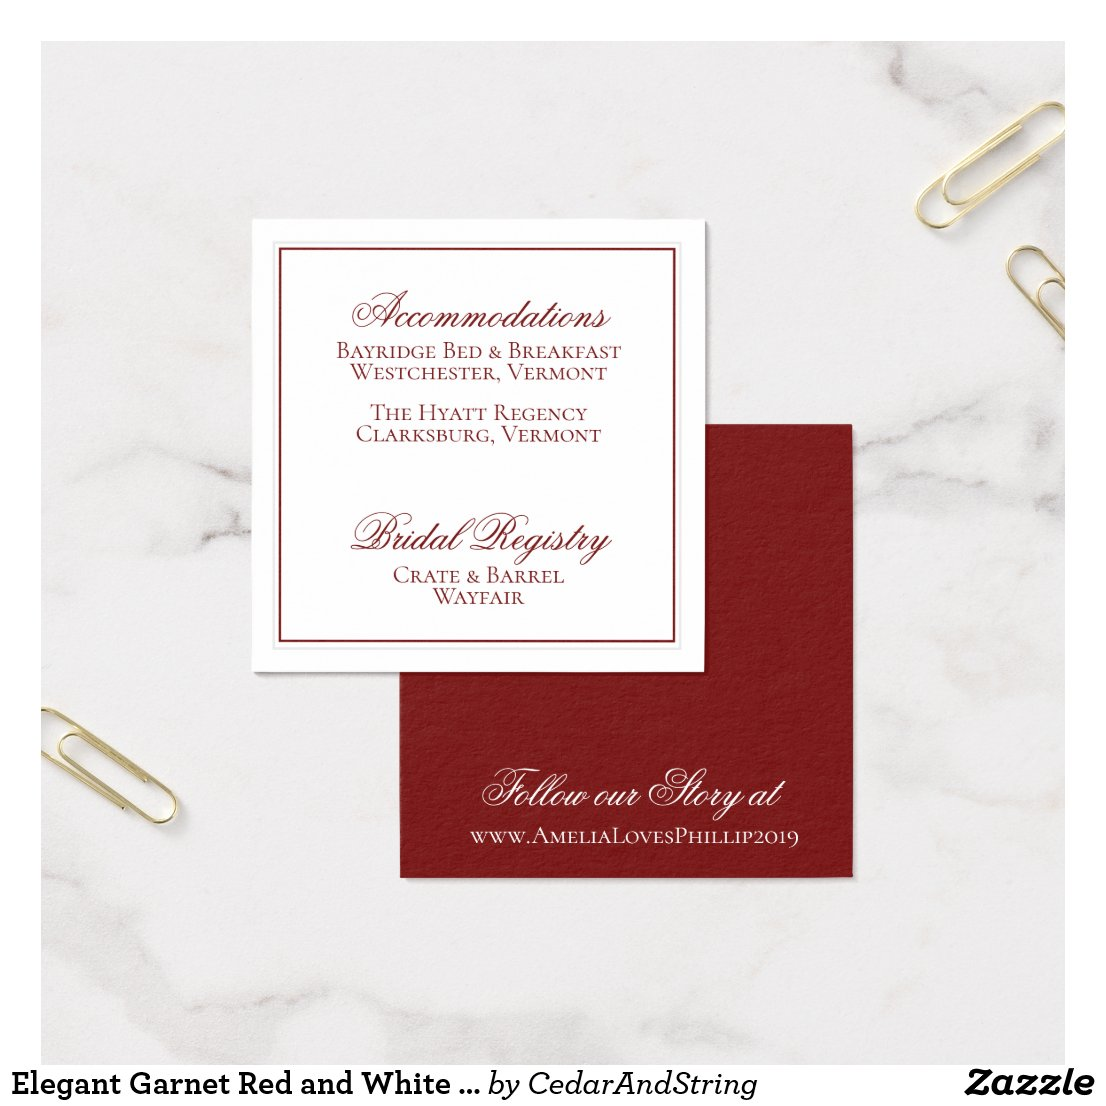 Elegant Garnet Red and White Wedding Details Card